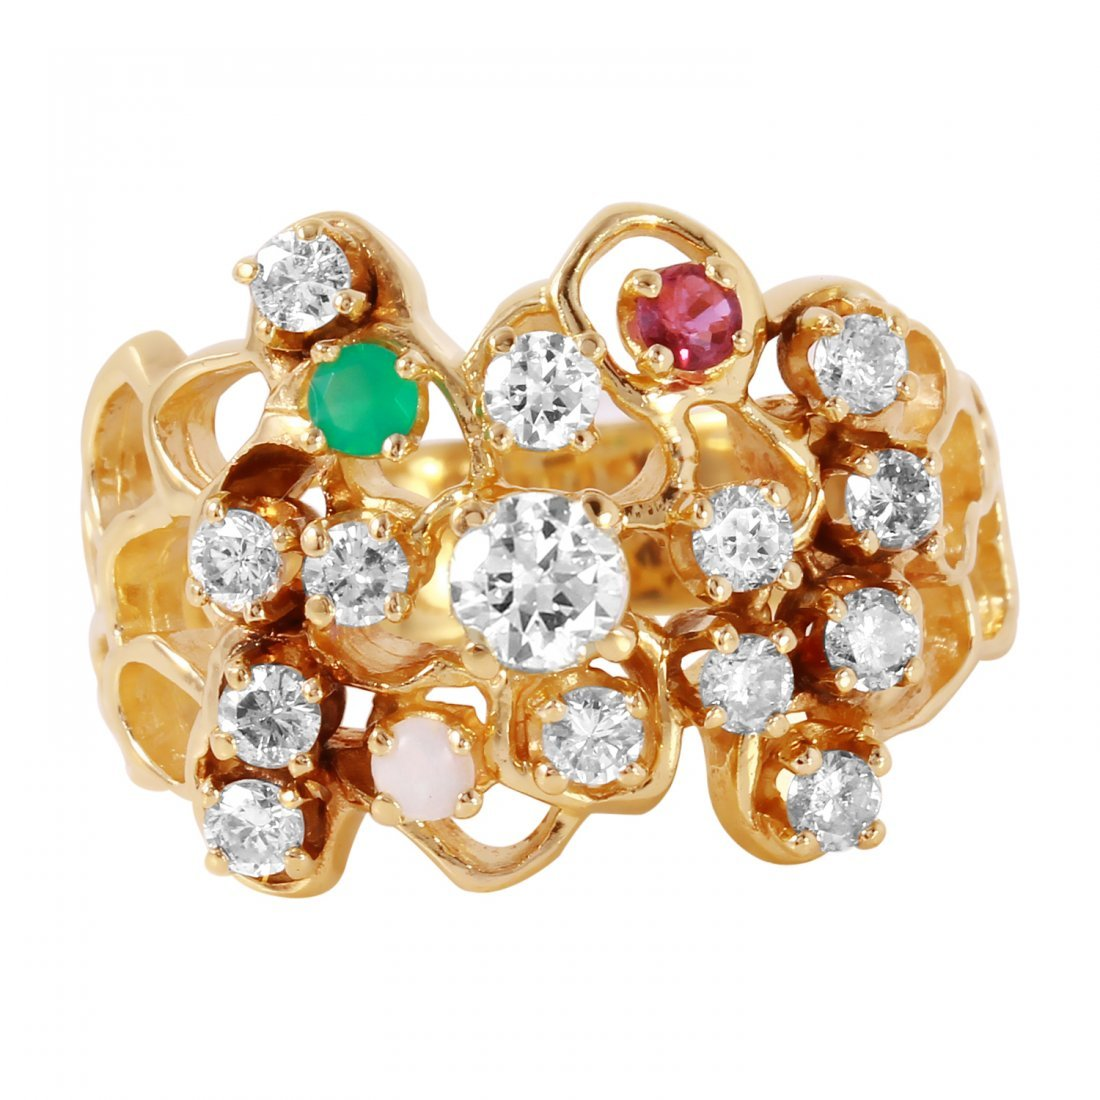 Ladies 1CTW Diamond And Multigem 14K Yellow Gold Ring - 3